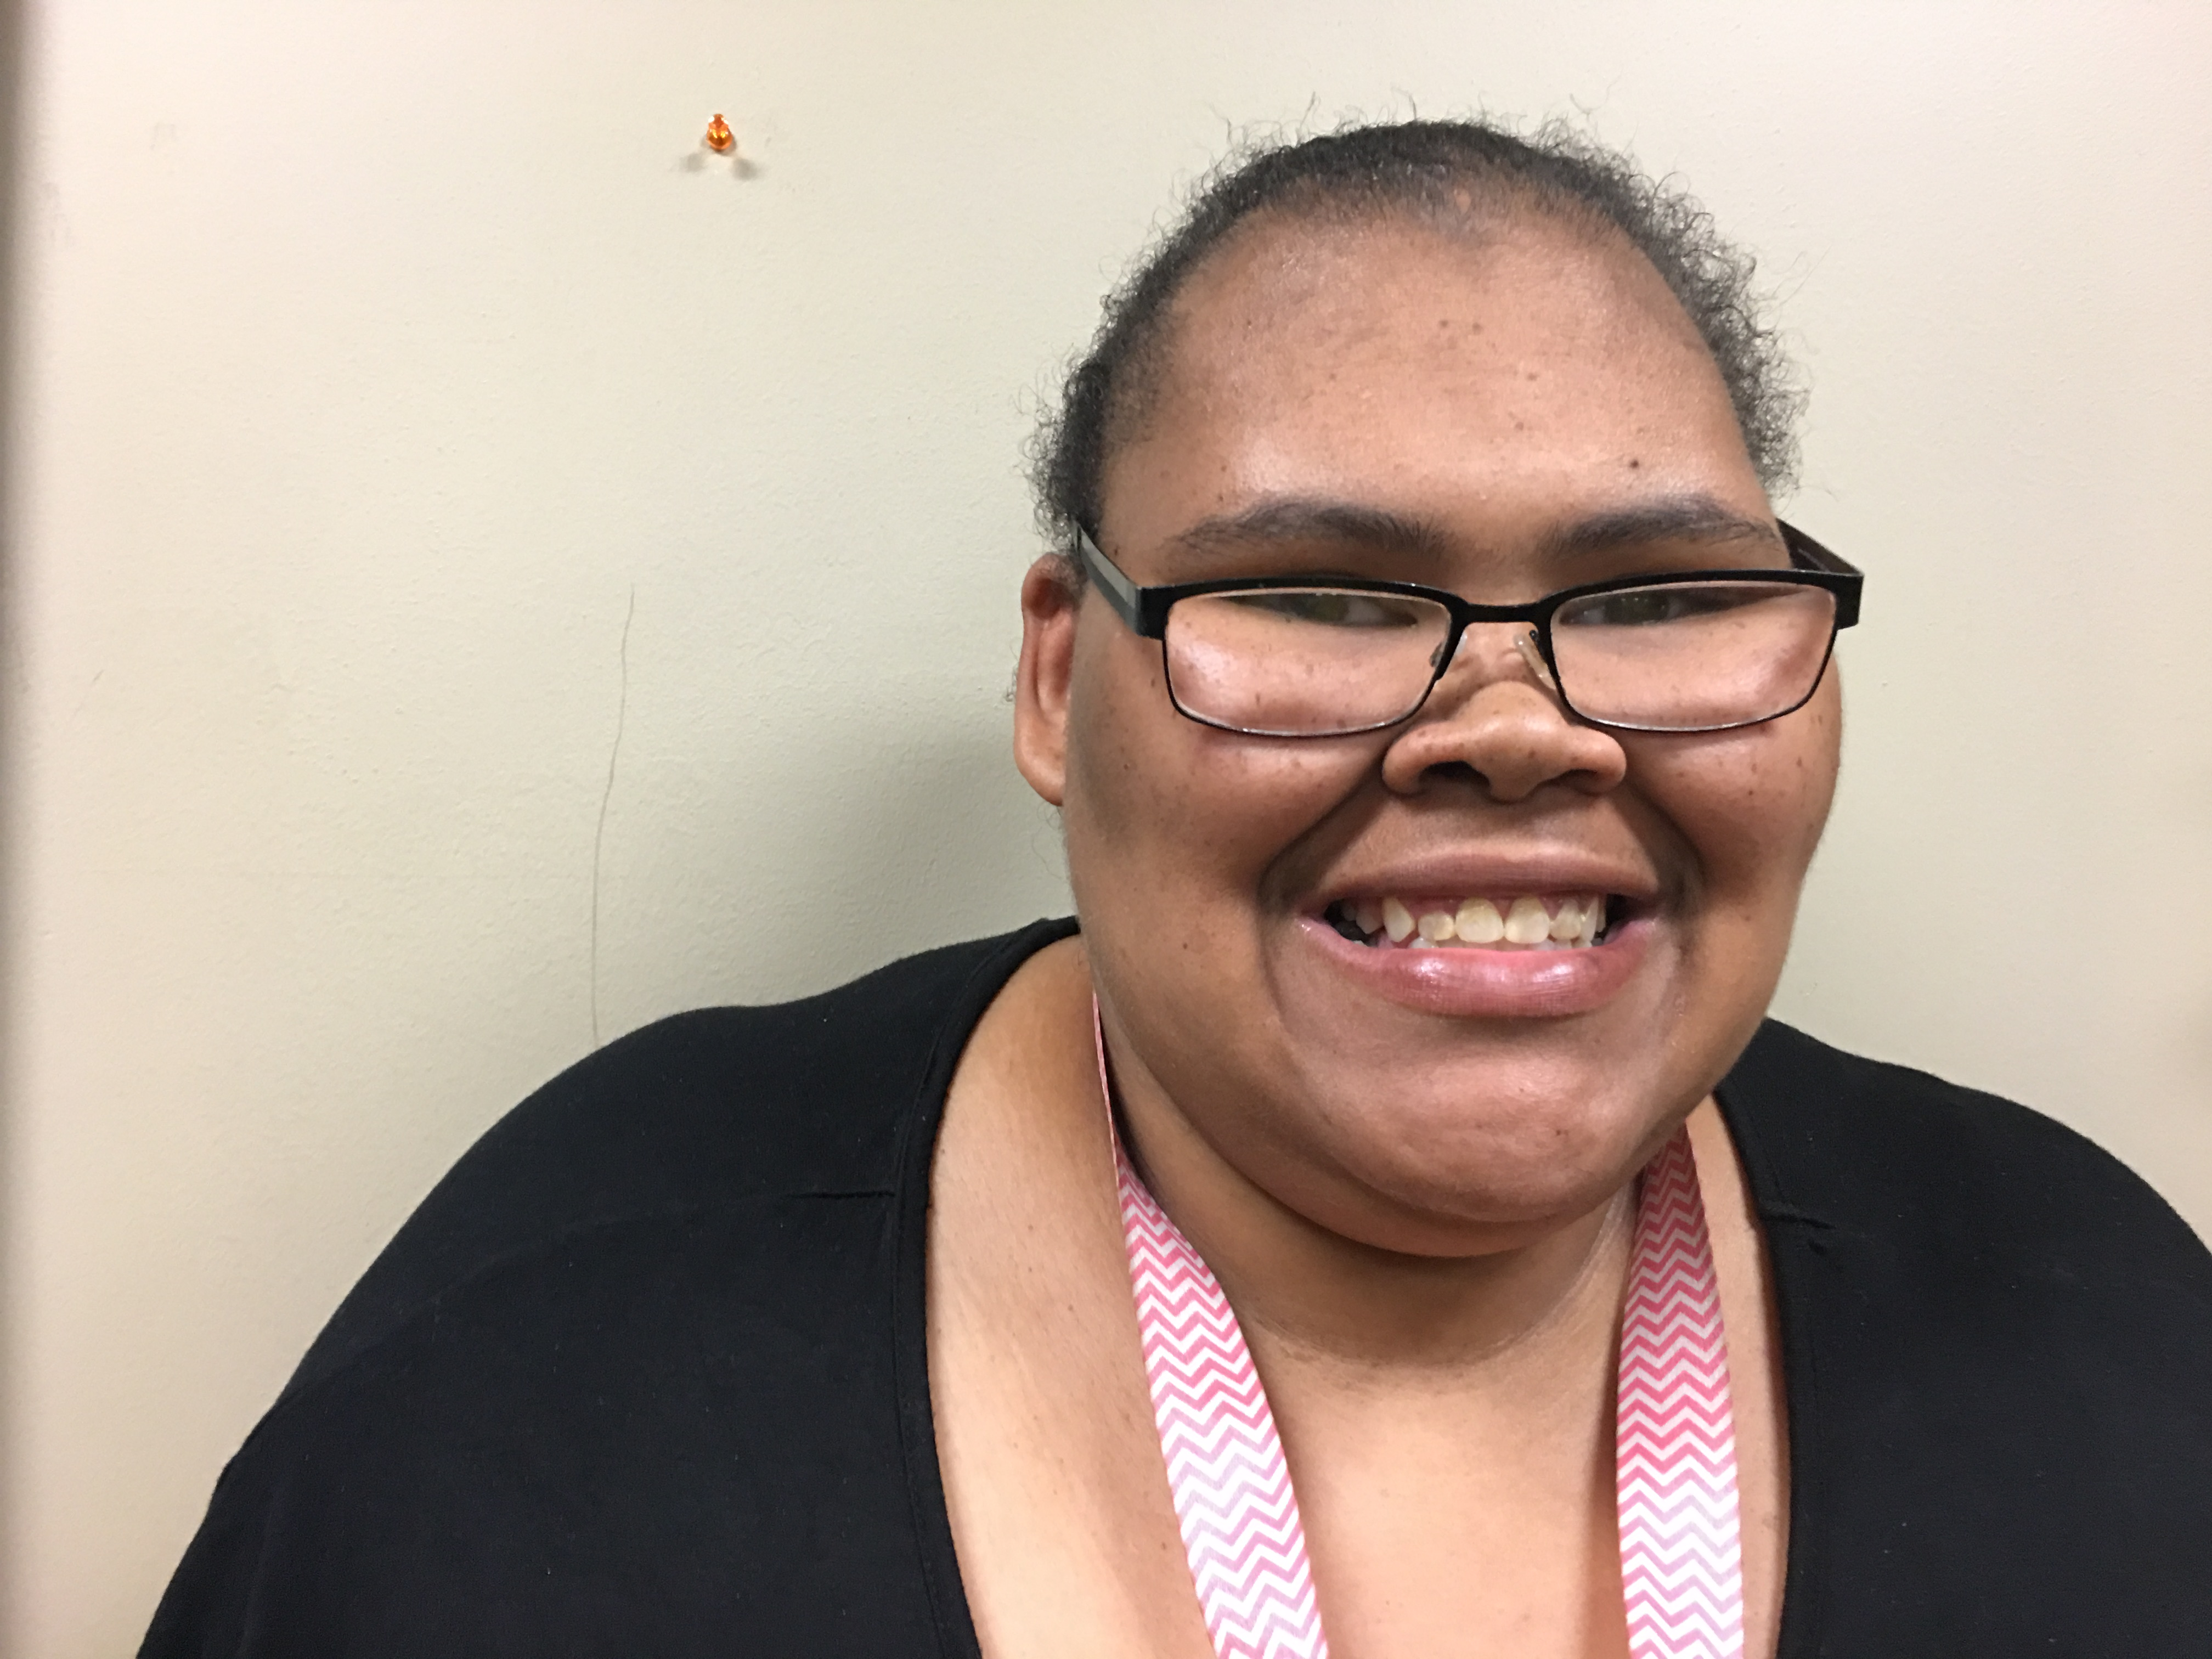 Nyketa Williams depends on Medicaid for her transportation, job and apartment